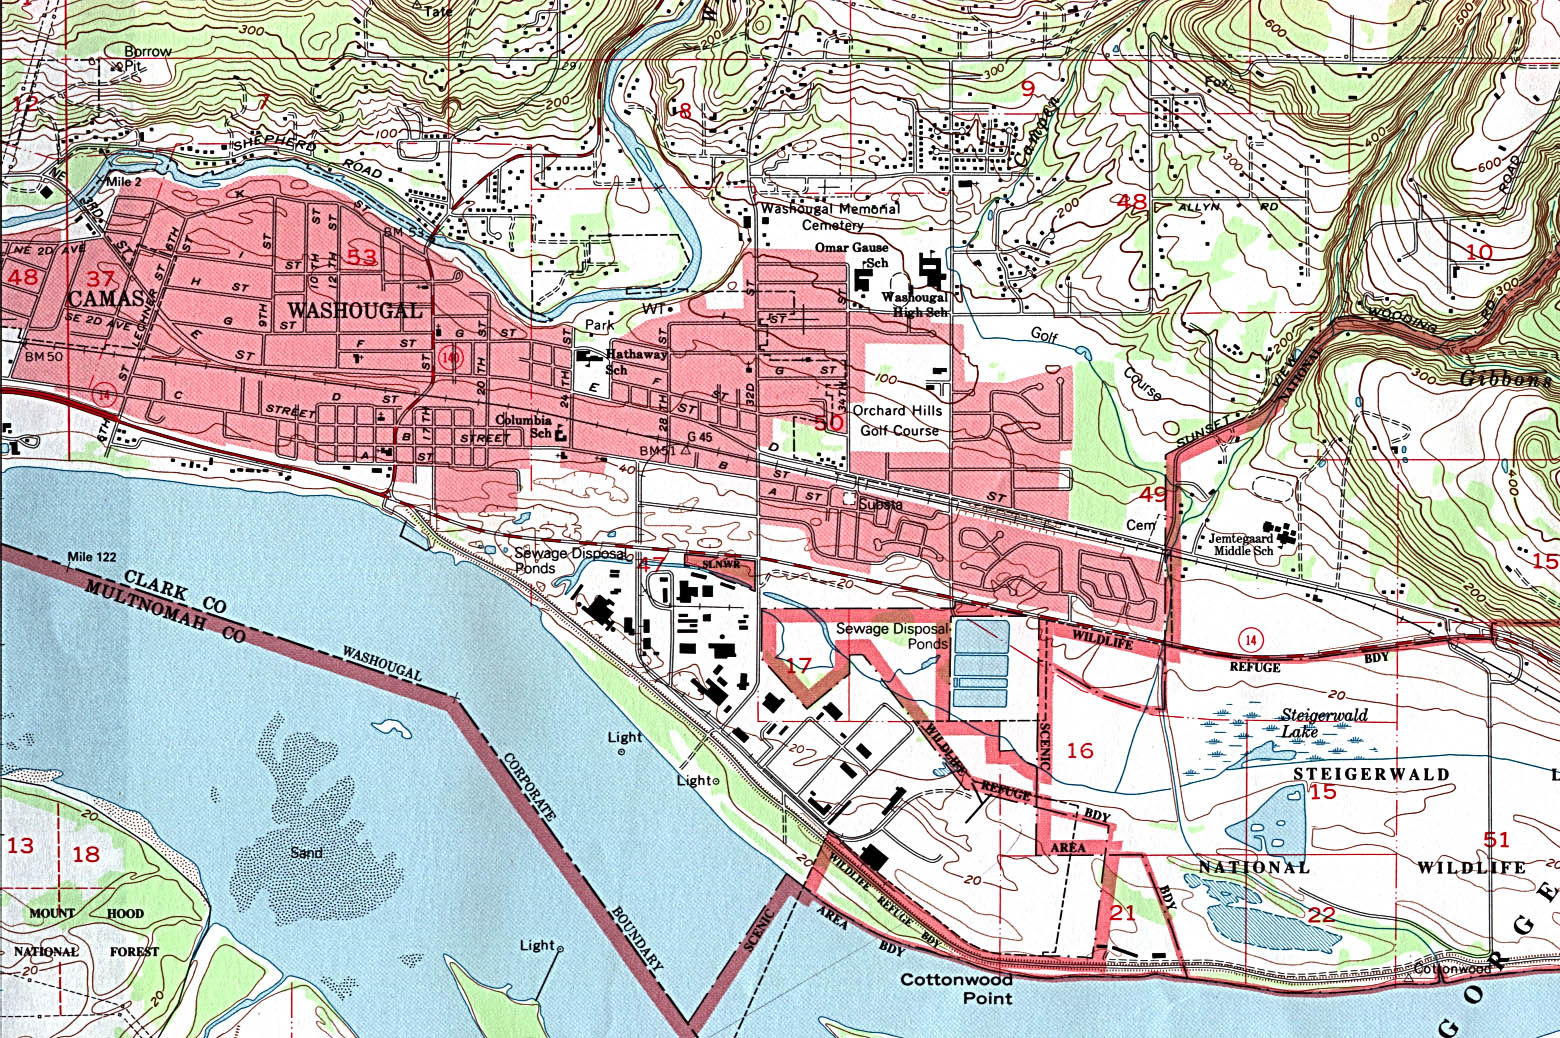 Washougal Topographic City Map, Washington, United States